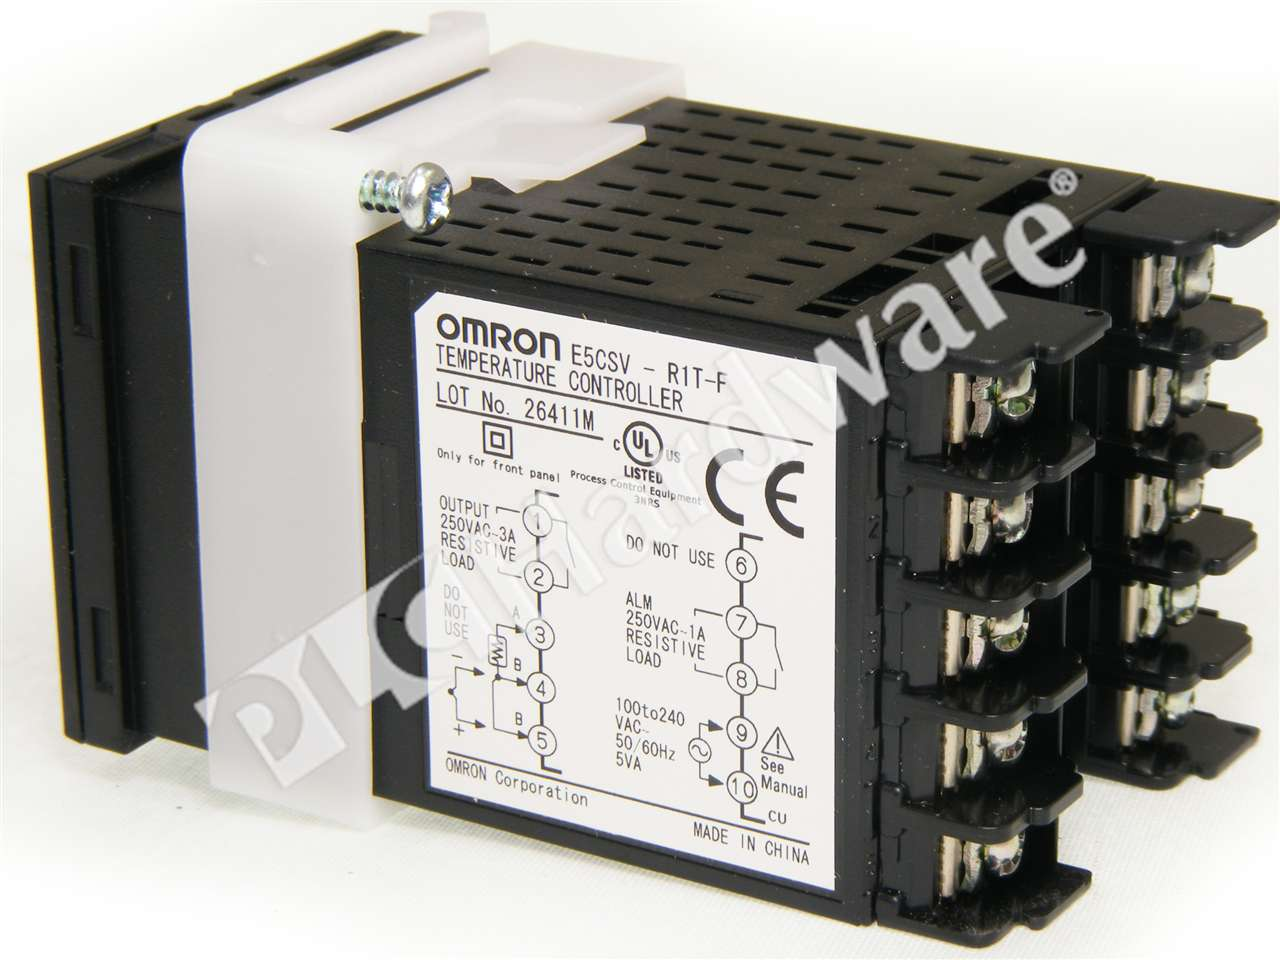 omron temperature controller wiring diagram 2017 ford ranger tail light new e5csv r1t f quantity